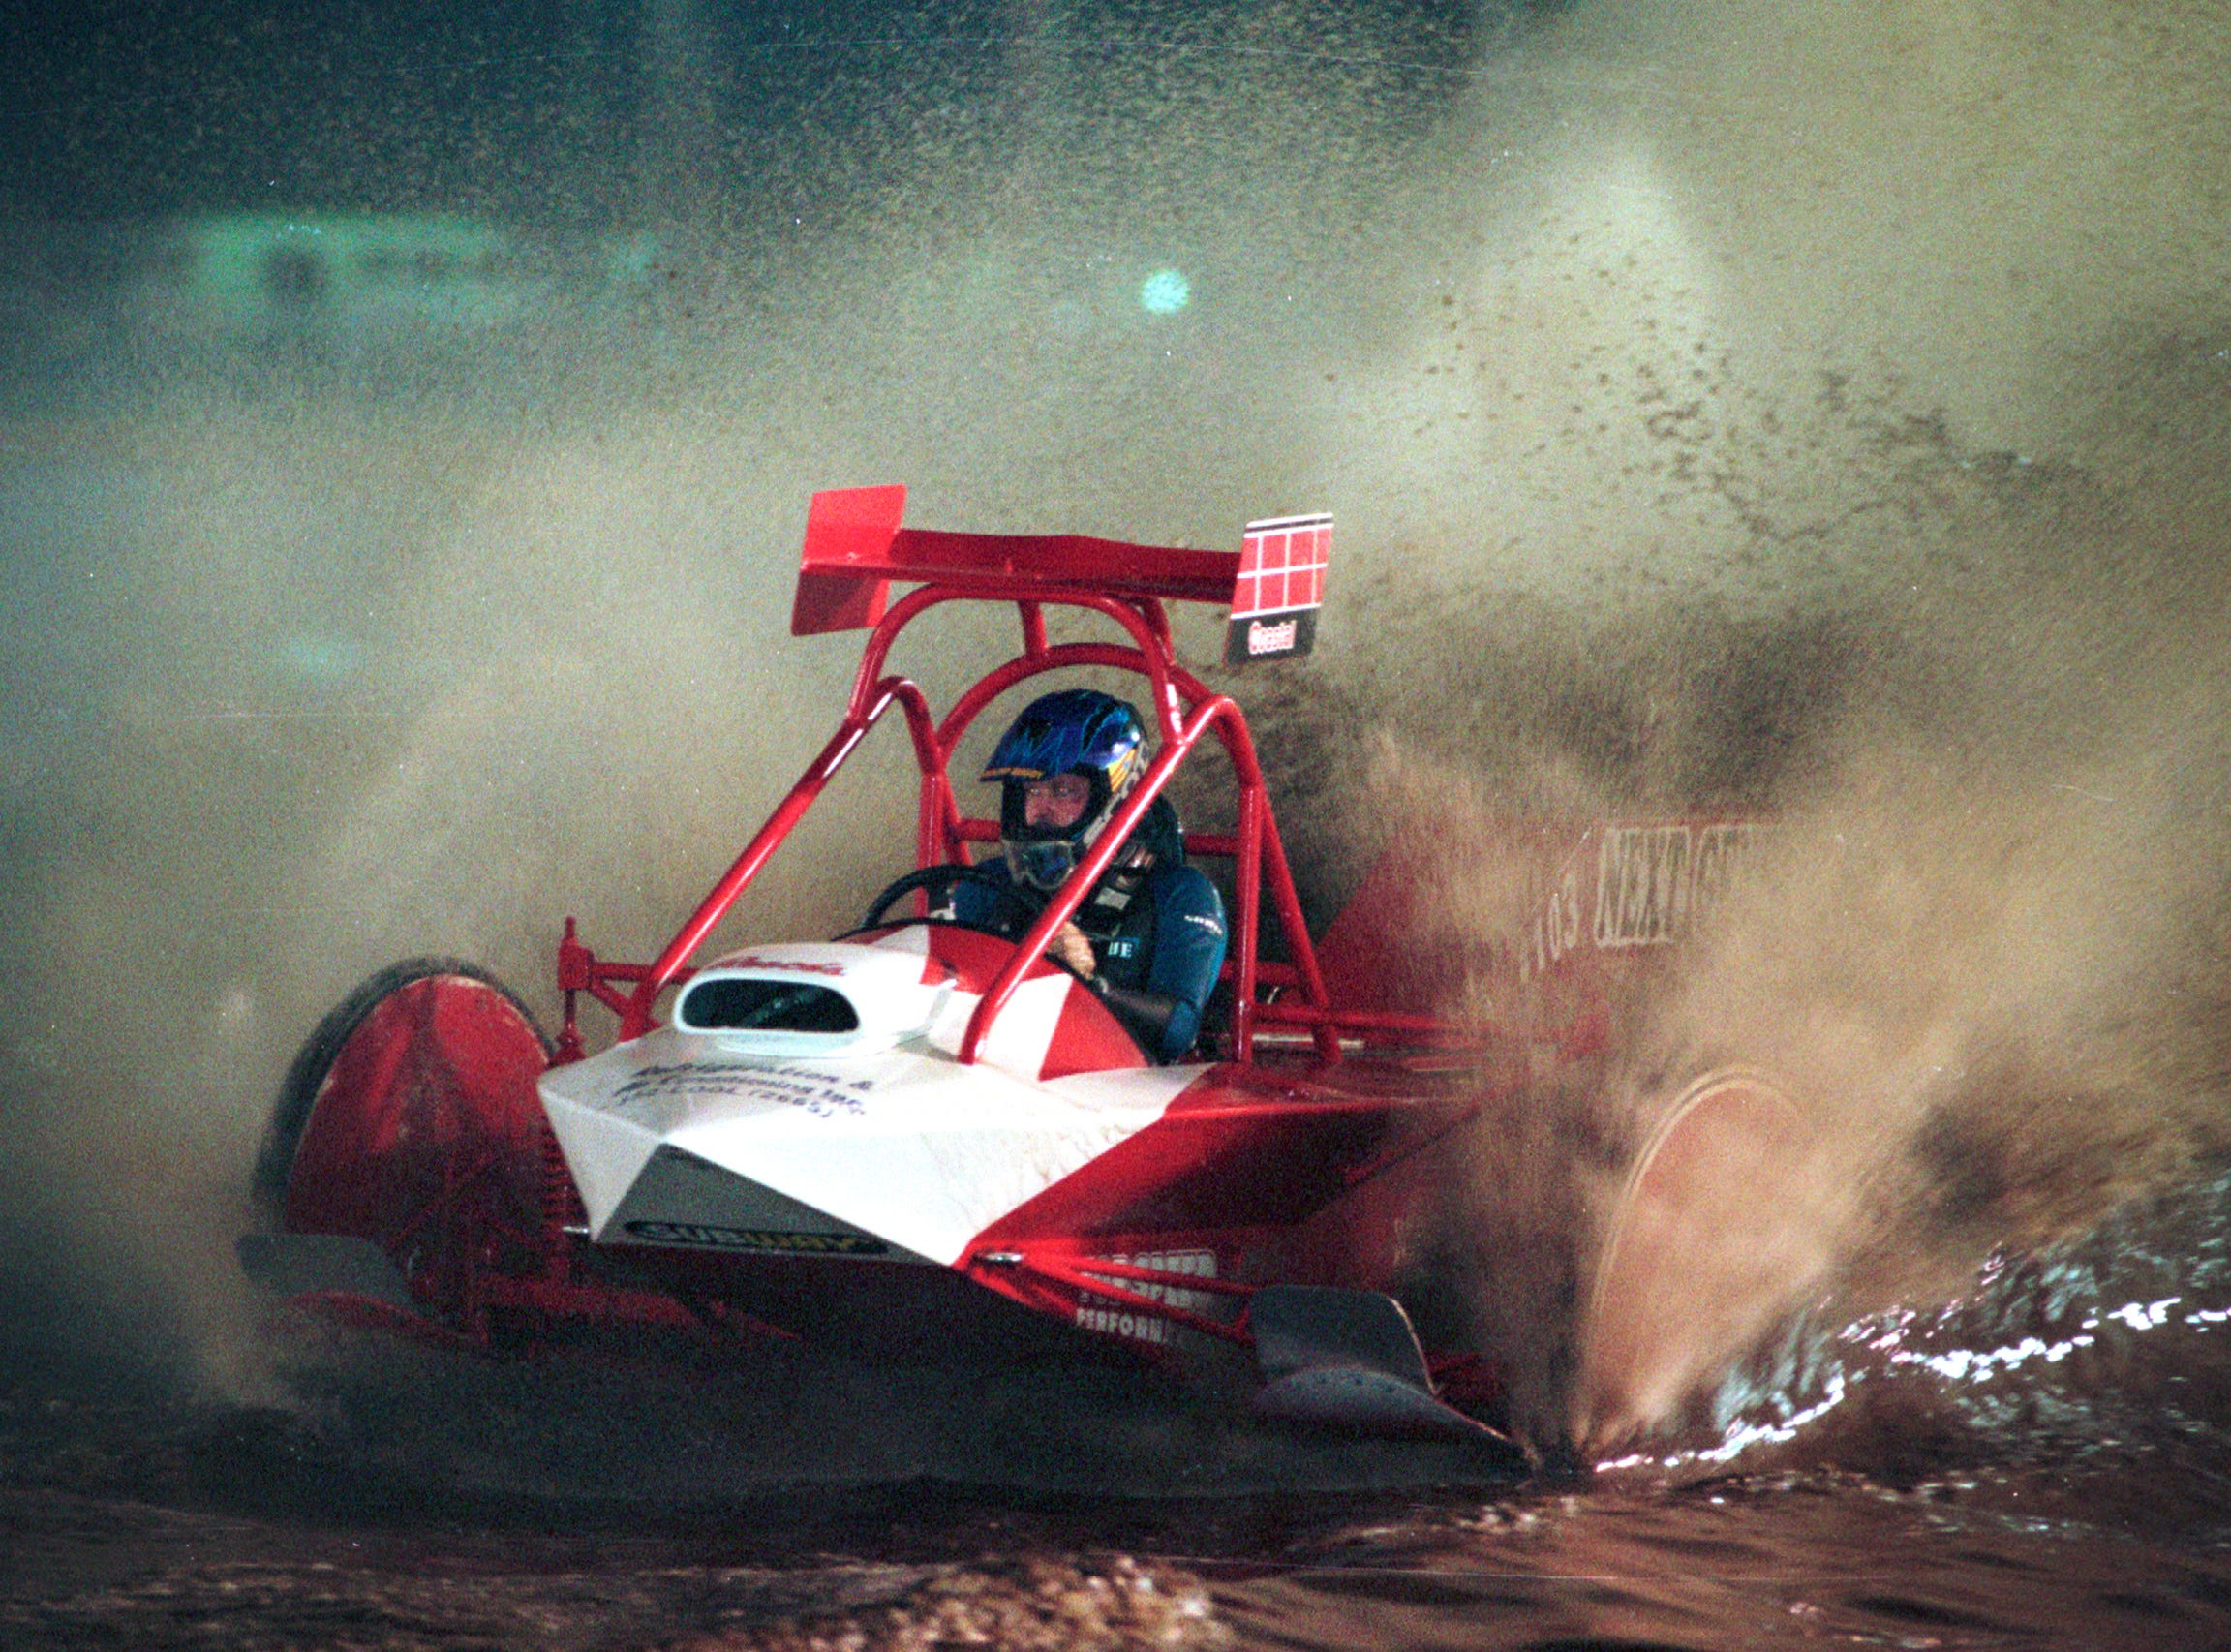 January 15, 1999 - MESA Park opened its track to swamp buggy racing in Fellsmere. Fans would have to go to Naples to see this type of racing until MESA opened its doors. Leonard Chesser navigates Dats Da One through the swamp track at MESA Park during their grand opening competition. Chesser had been driving since 1970 and racked up 17 victories since he started the sport.